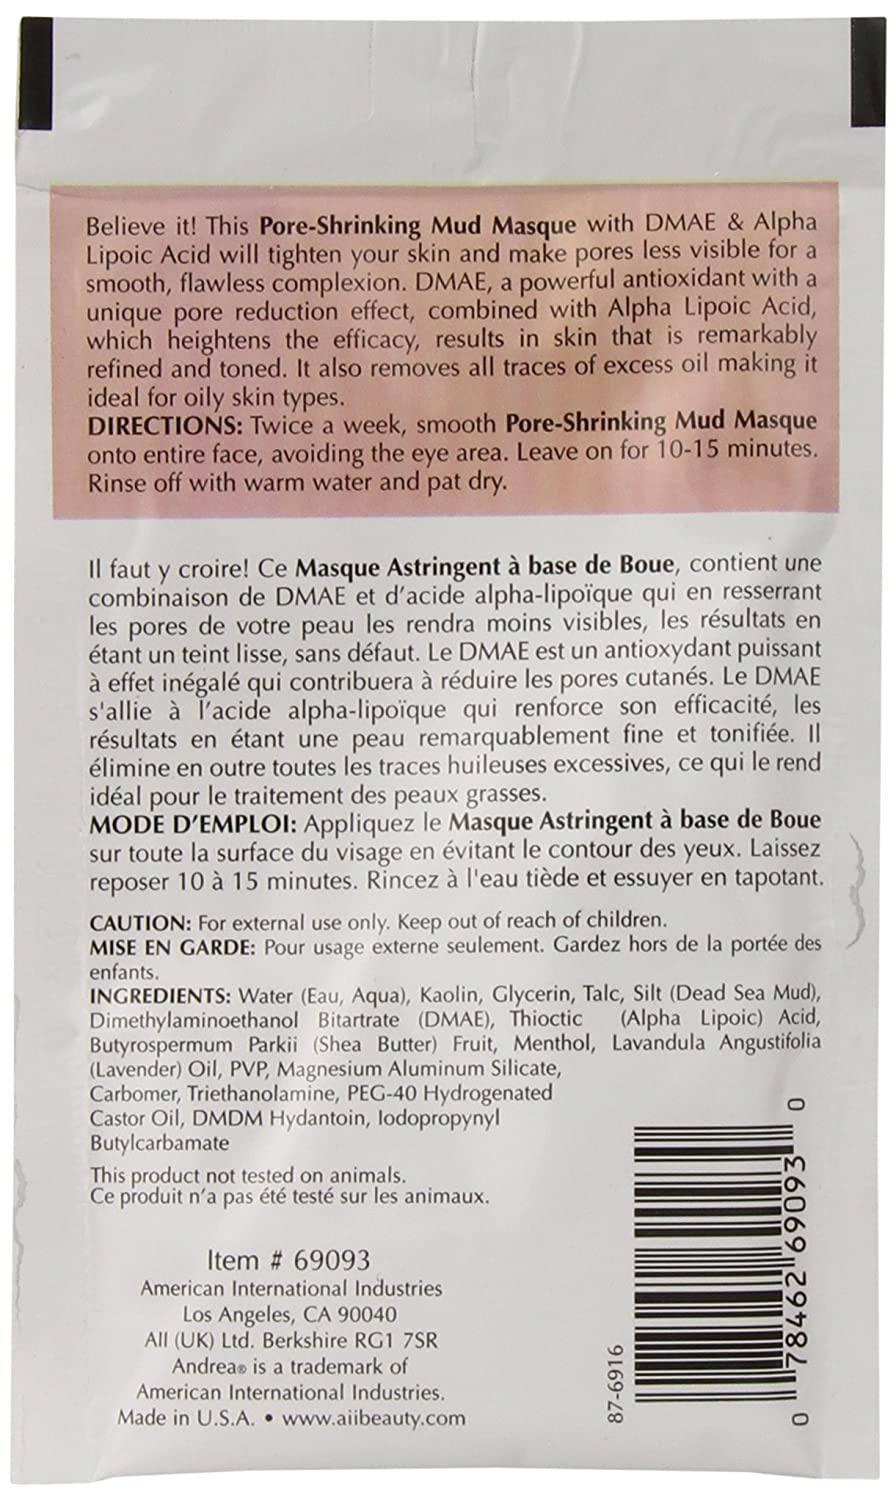 Andrea Face Spa Pore Shrinking Mud Face Masque, 0.5-Ounce Pack of 72